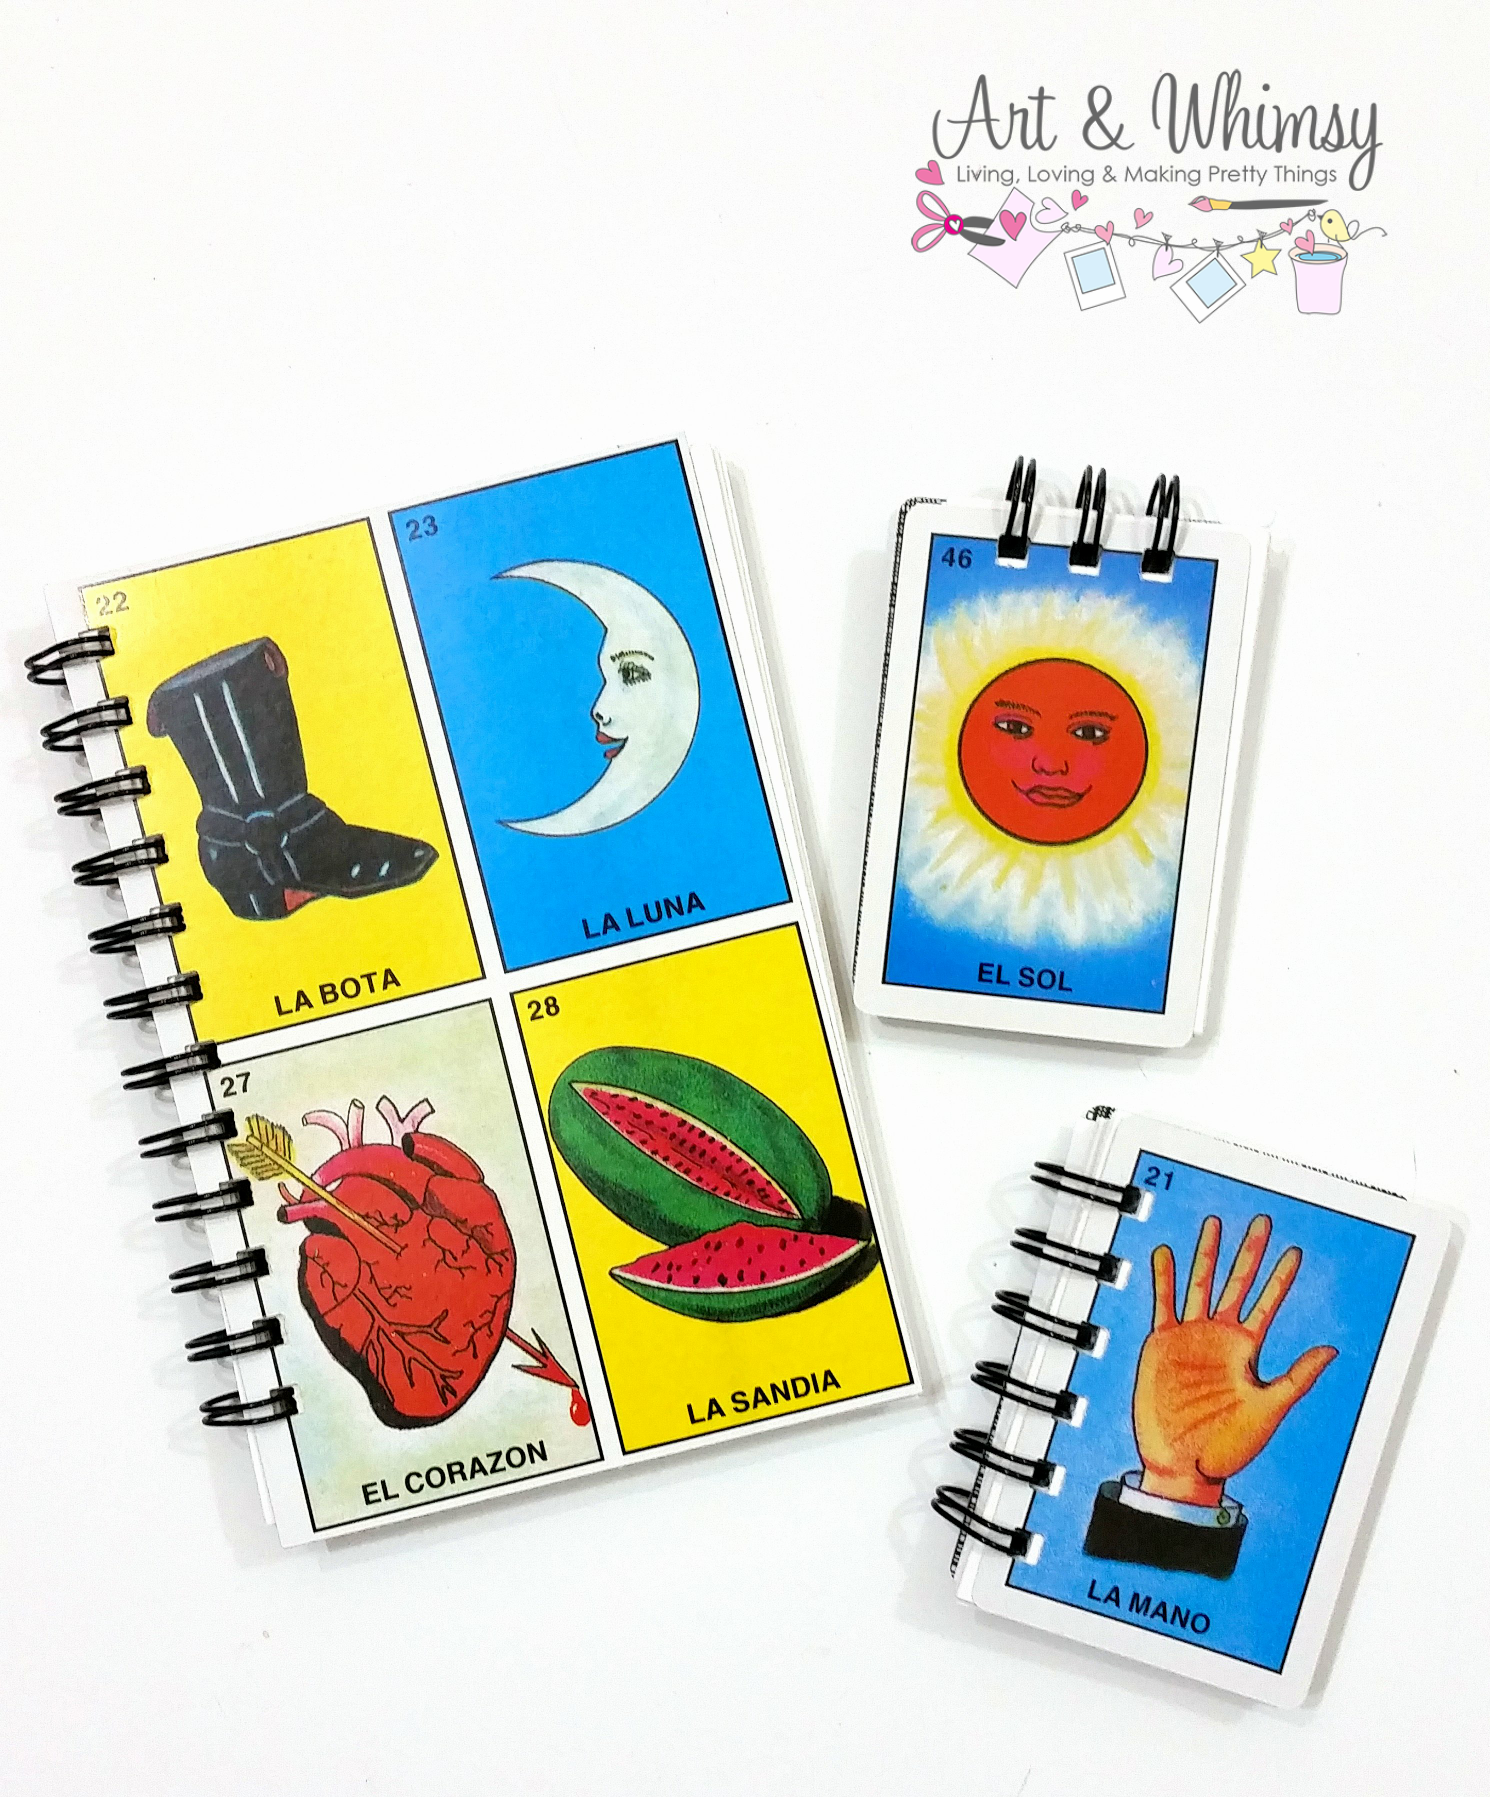 This week I've been working on these Lotería inspired